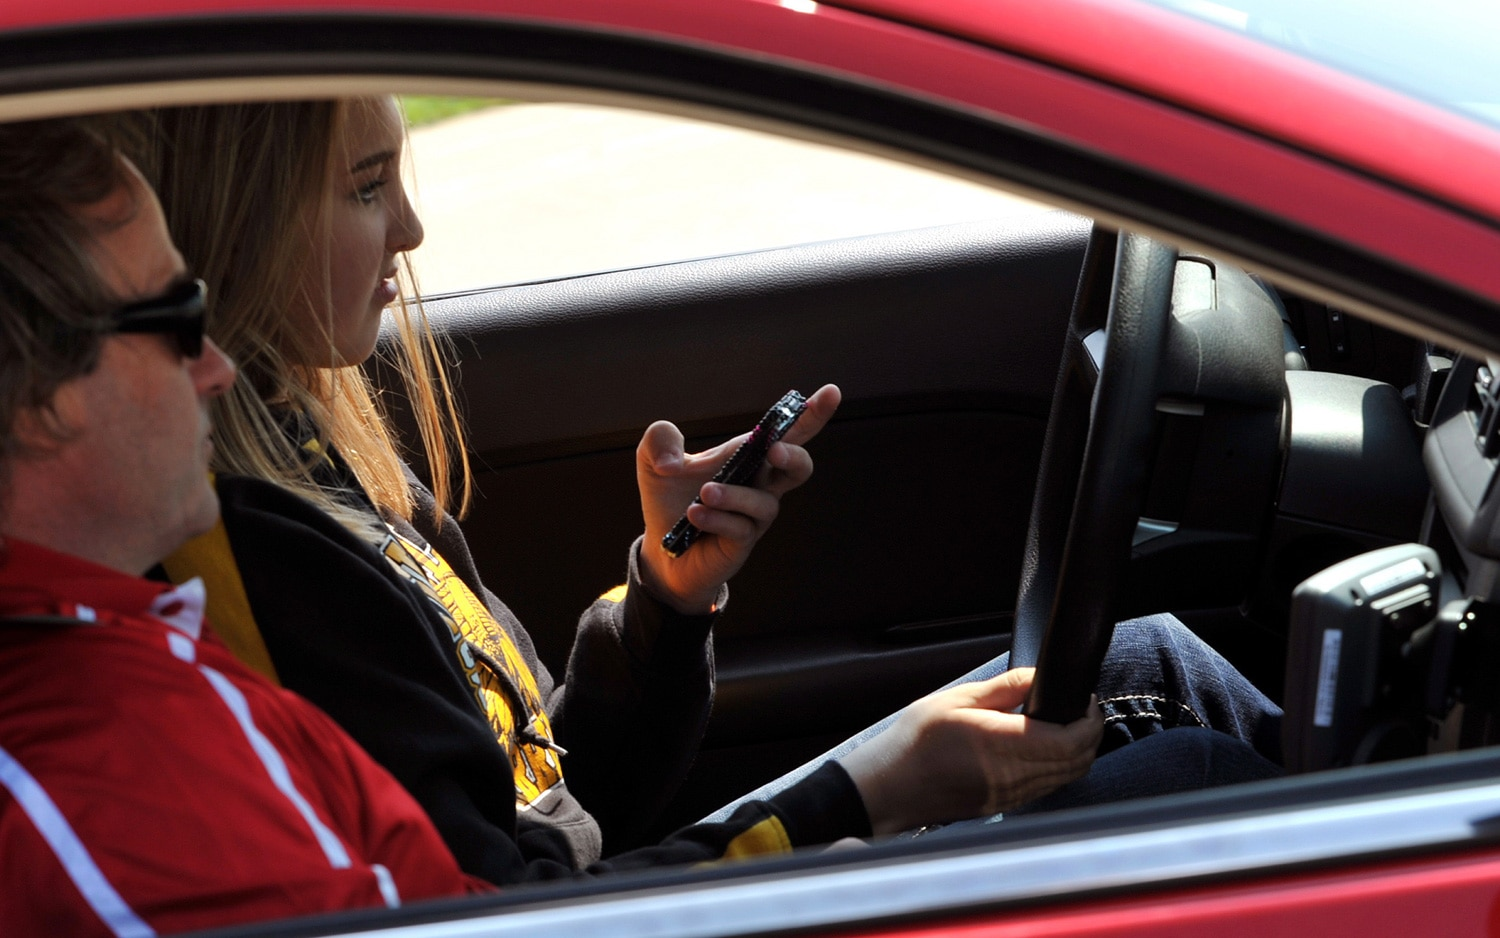 Texting While Driving 21